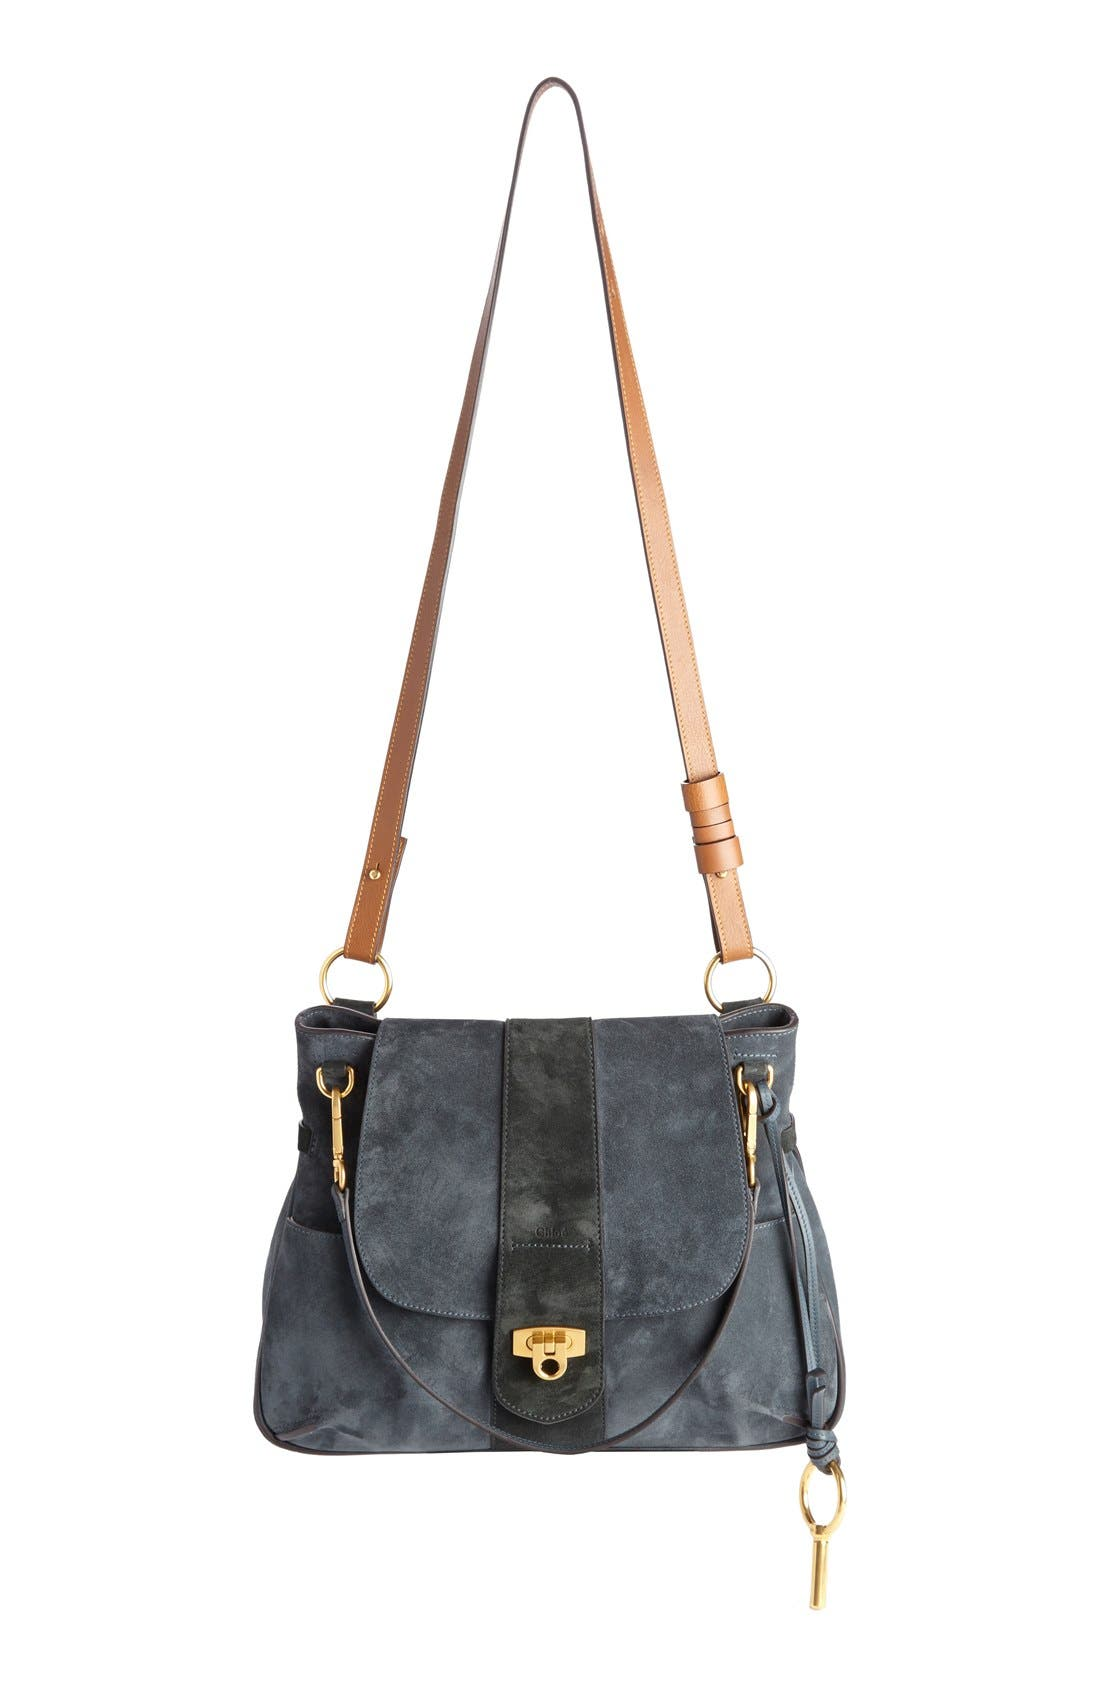 Chloé 'Medium Lexa' Suede Shoulder Bag